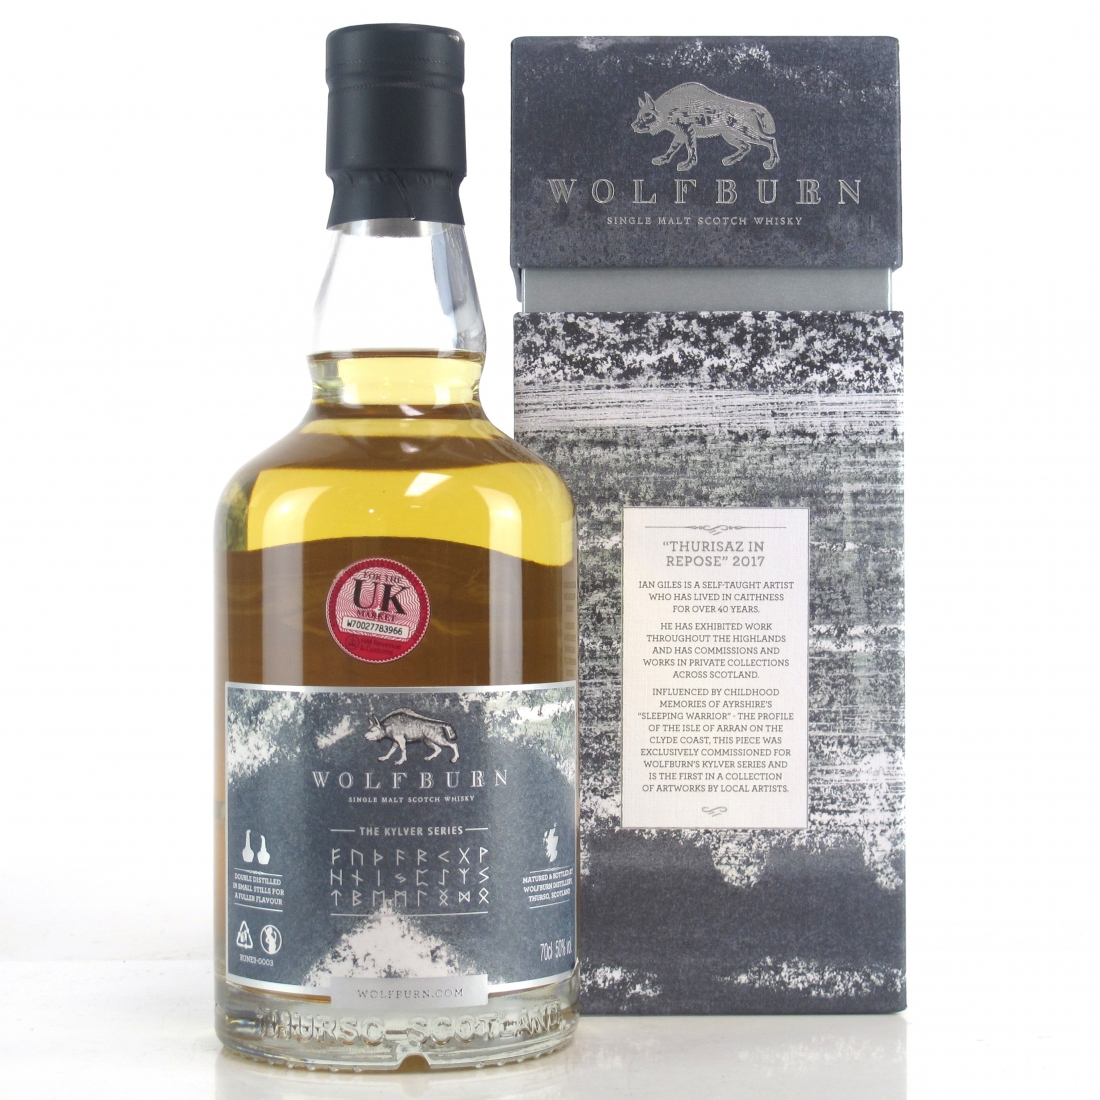 Wolfburn Kylver Series Limited Edition 3rd Release